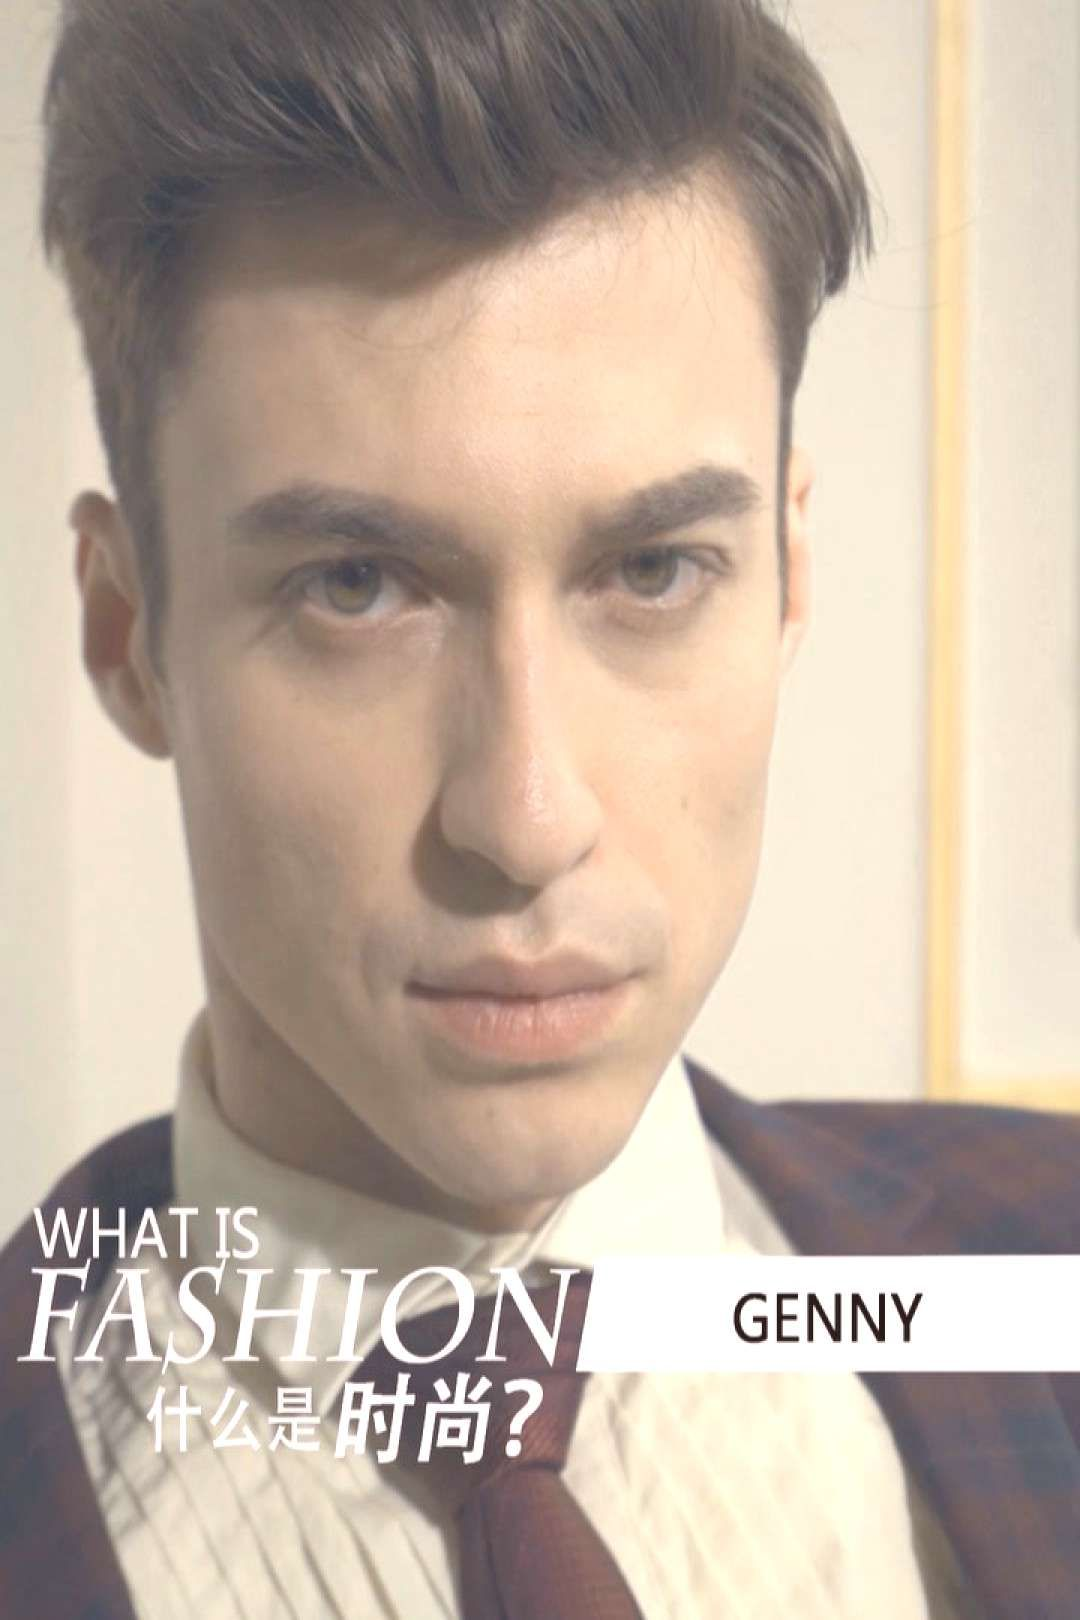 #vmagazine #attitude #fashion #what #is #an #vm What is Fashion ? 什么是时尚? Fashion is an attitude ! vmYou can find V magazine and more on our website.What is Fashion ? 什么是时尚? Fashion is an attitude ! vm